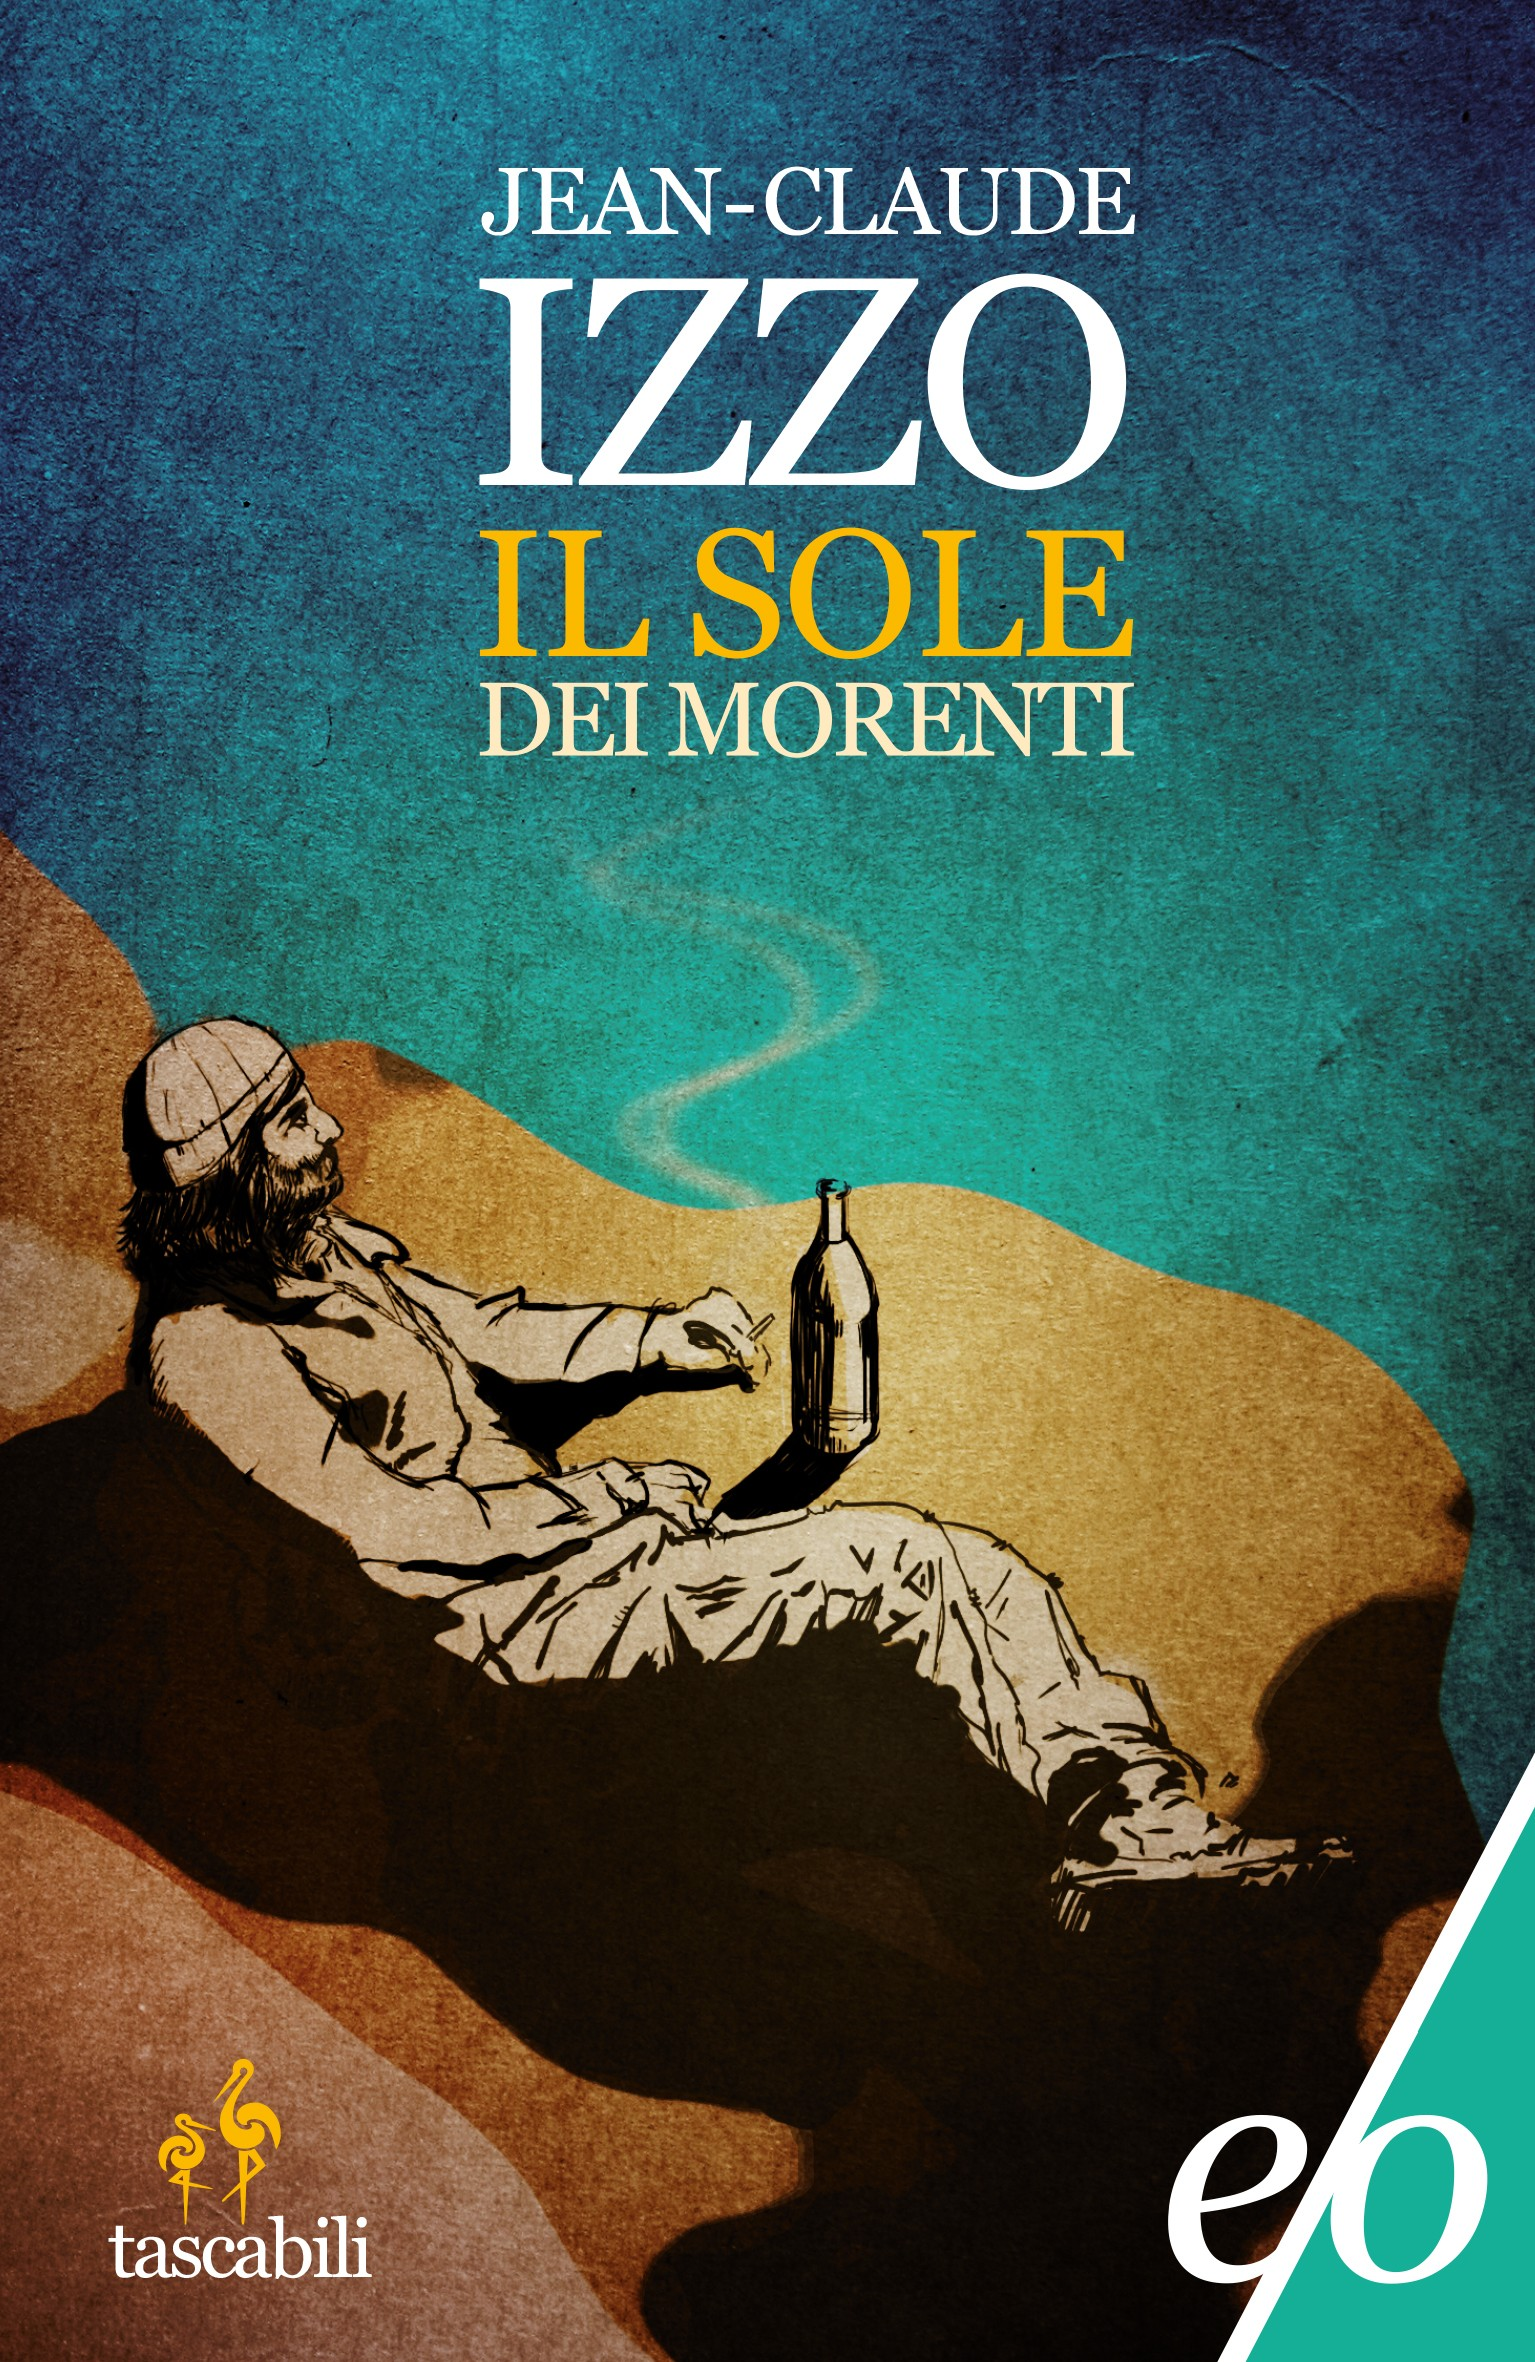 http://alessandria.bookrepublic.it/api/books/9788866321804/cover